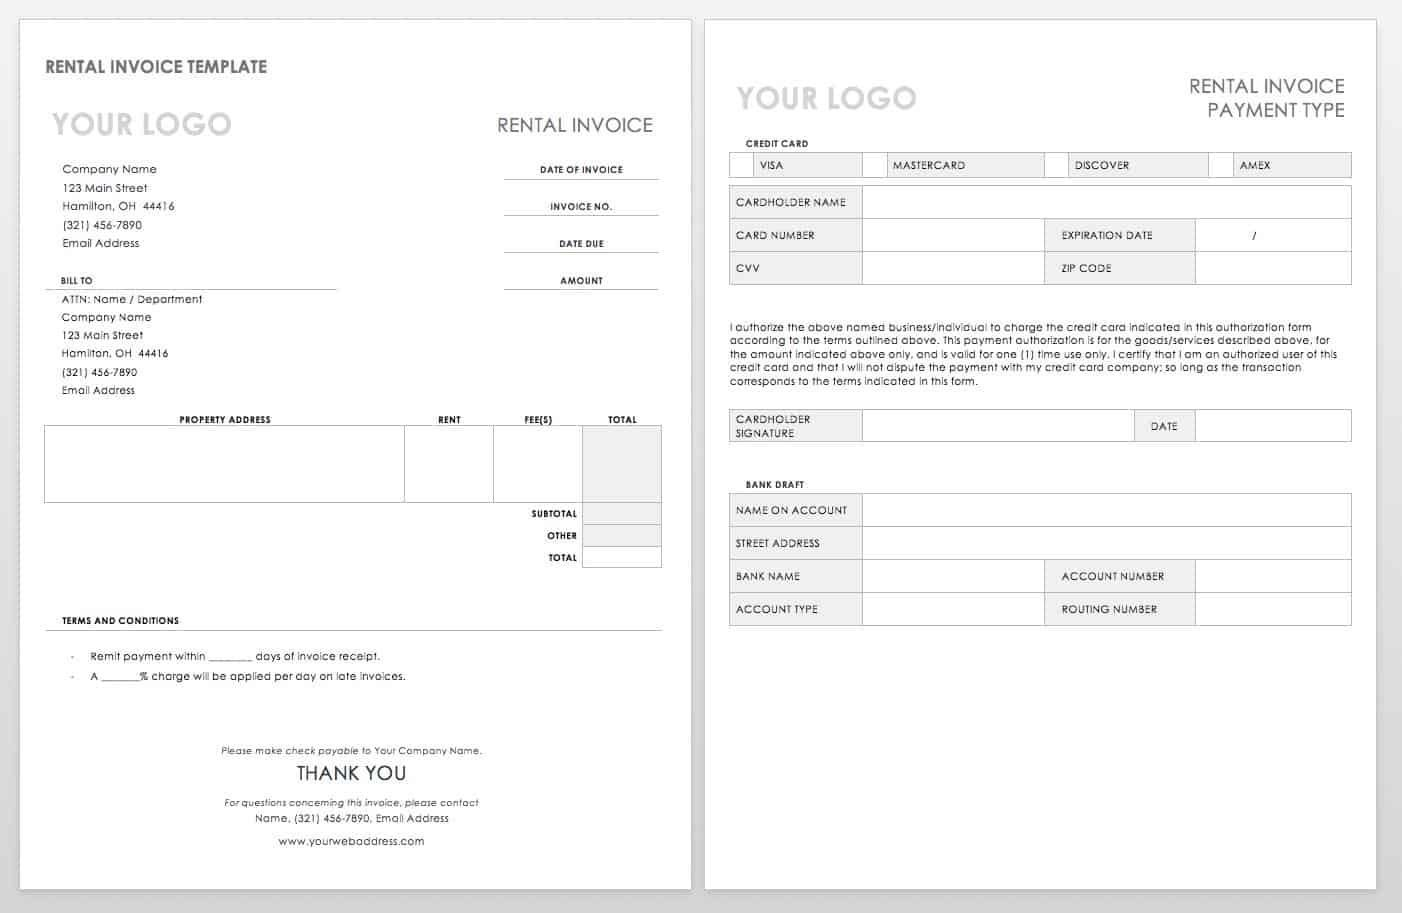 007 Unique House Rent Receipt Template India Doc Example  Format DownloadFull